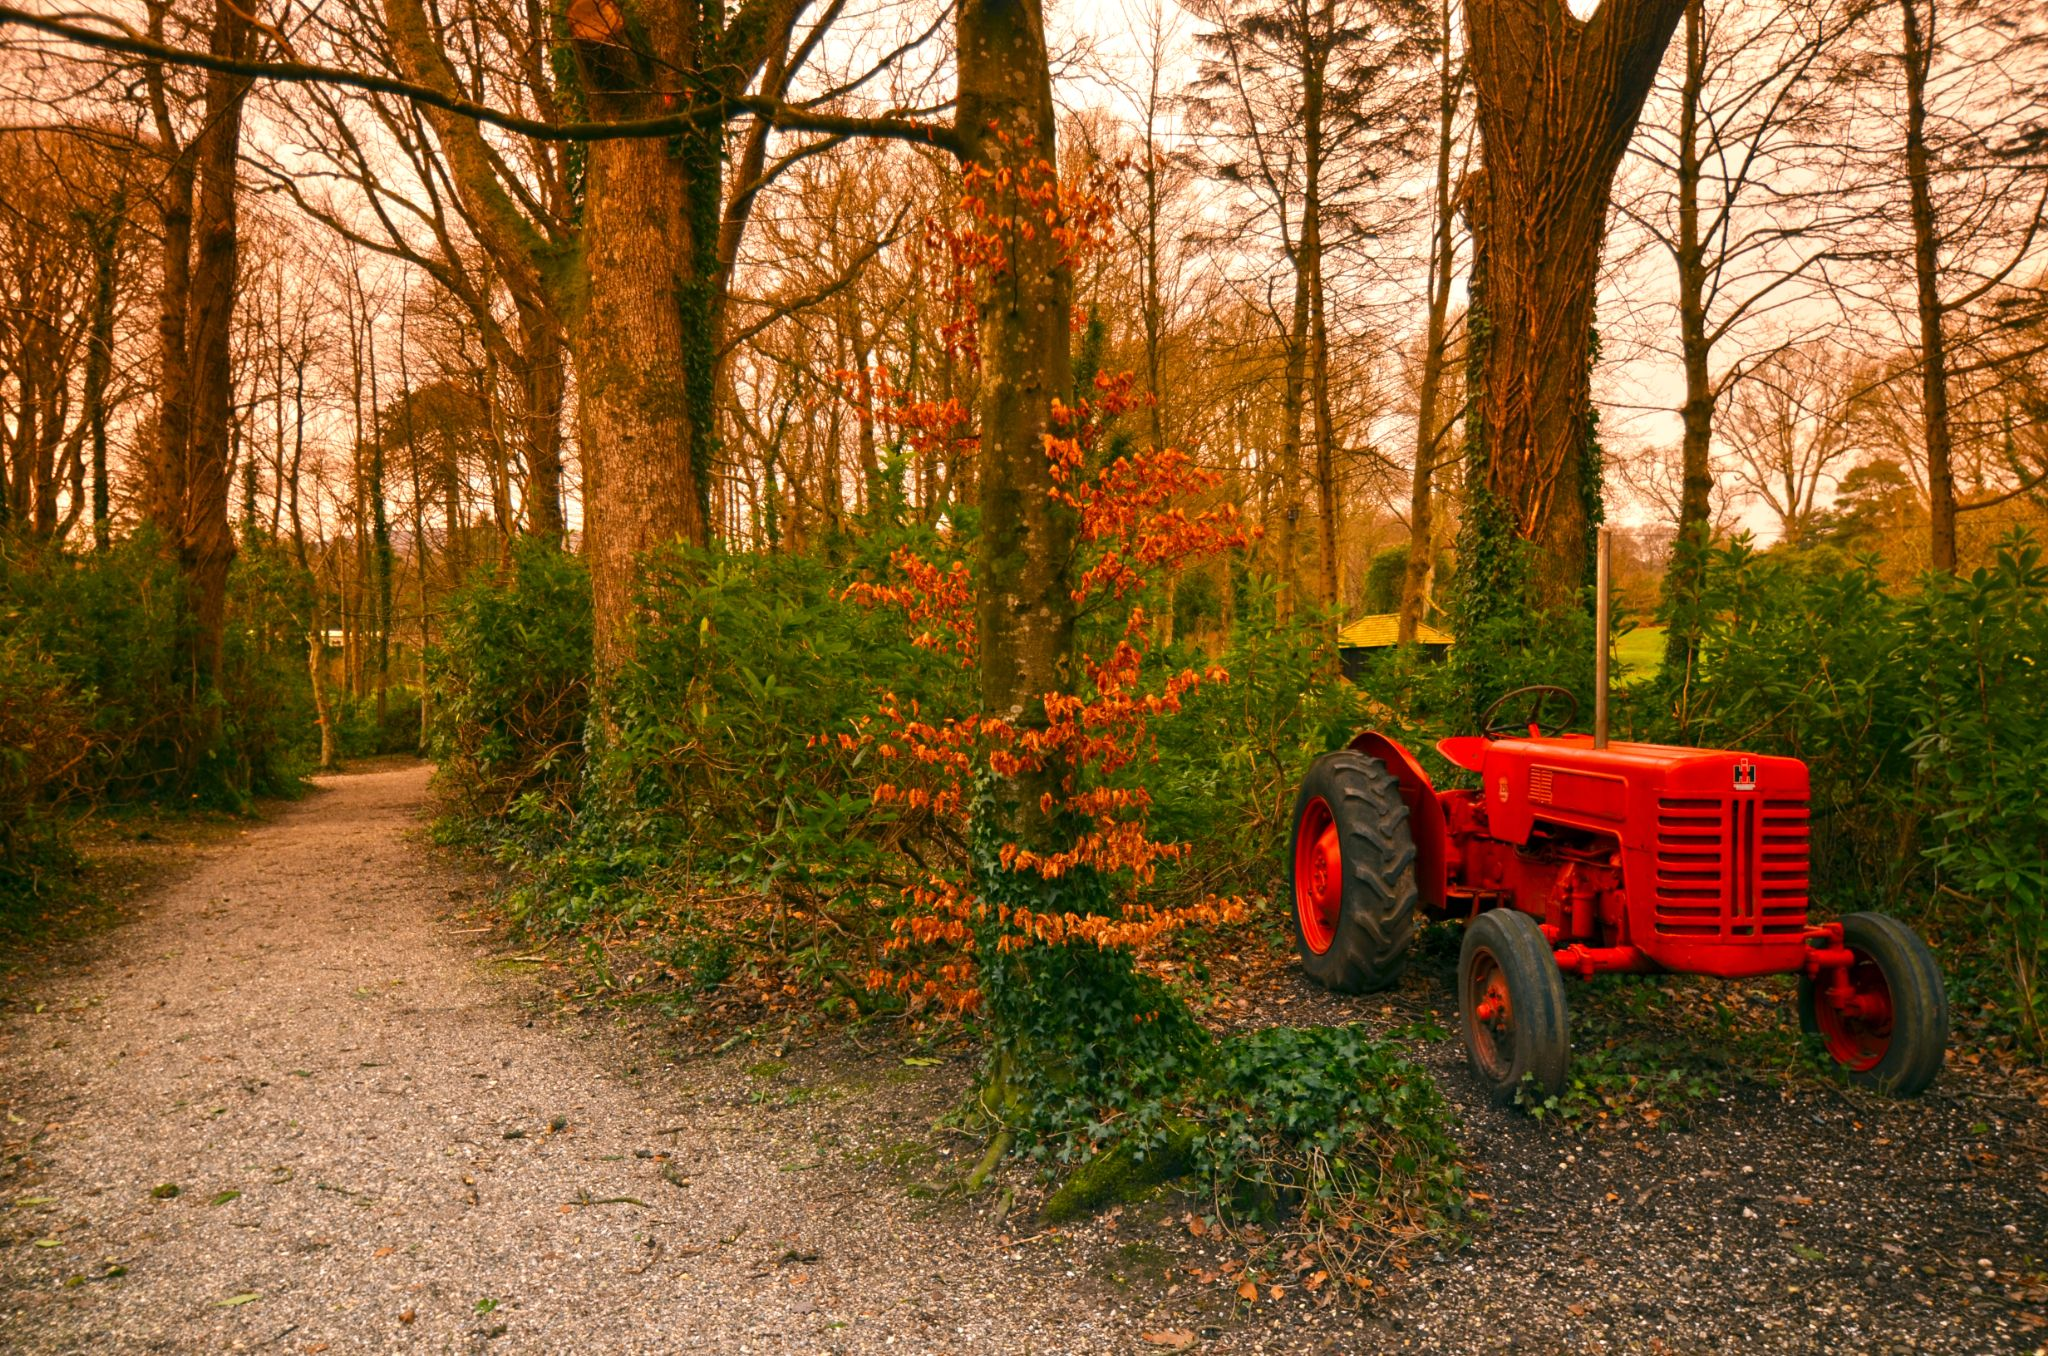 Red Tractor by tom.douthwaite